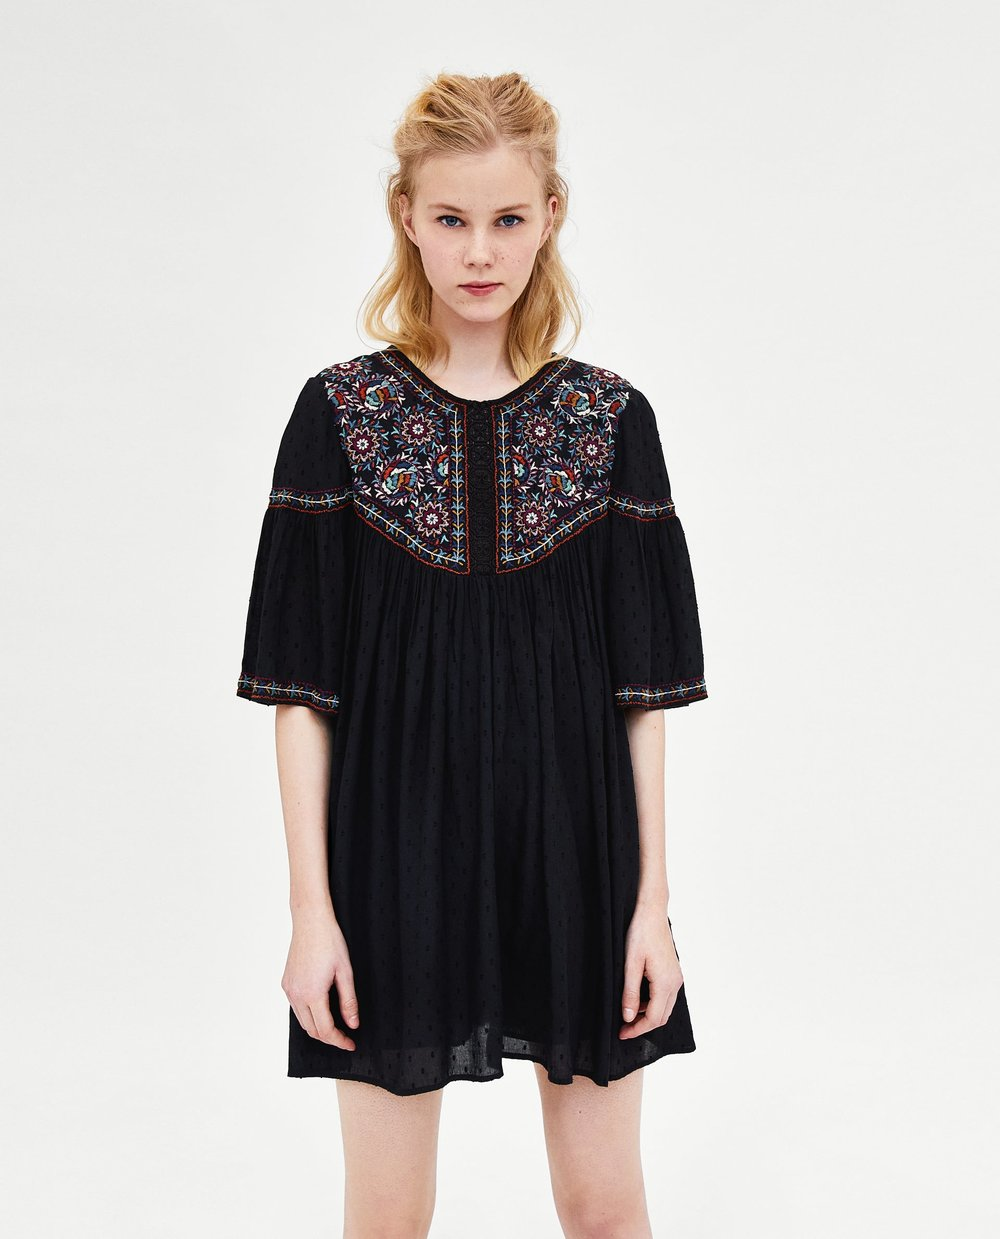 ZARA-LUMETIS-EMBROIDERED-DRESS-black.jpg